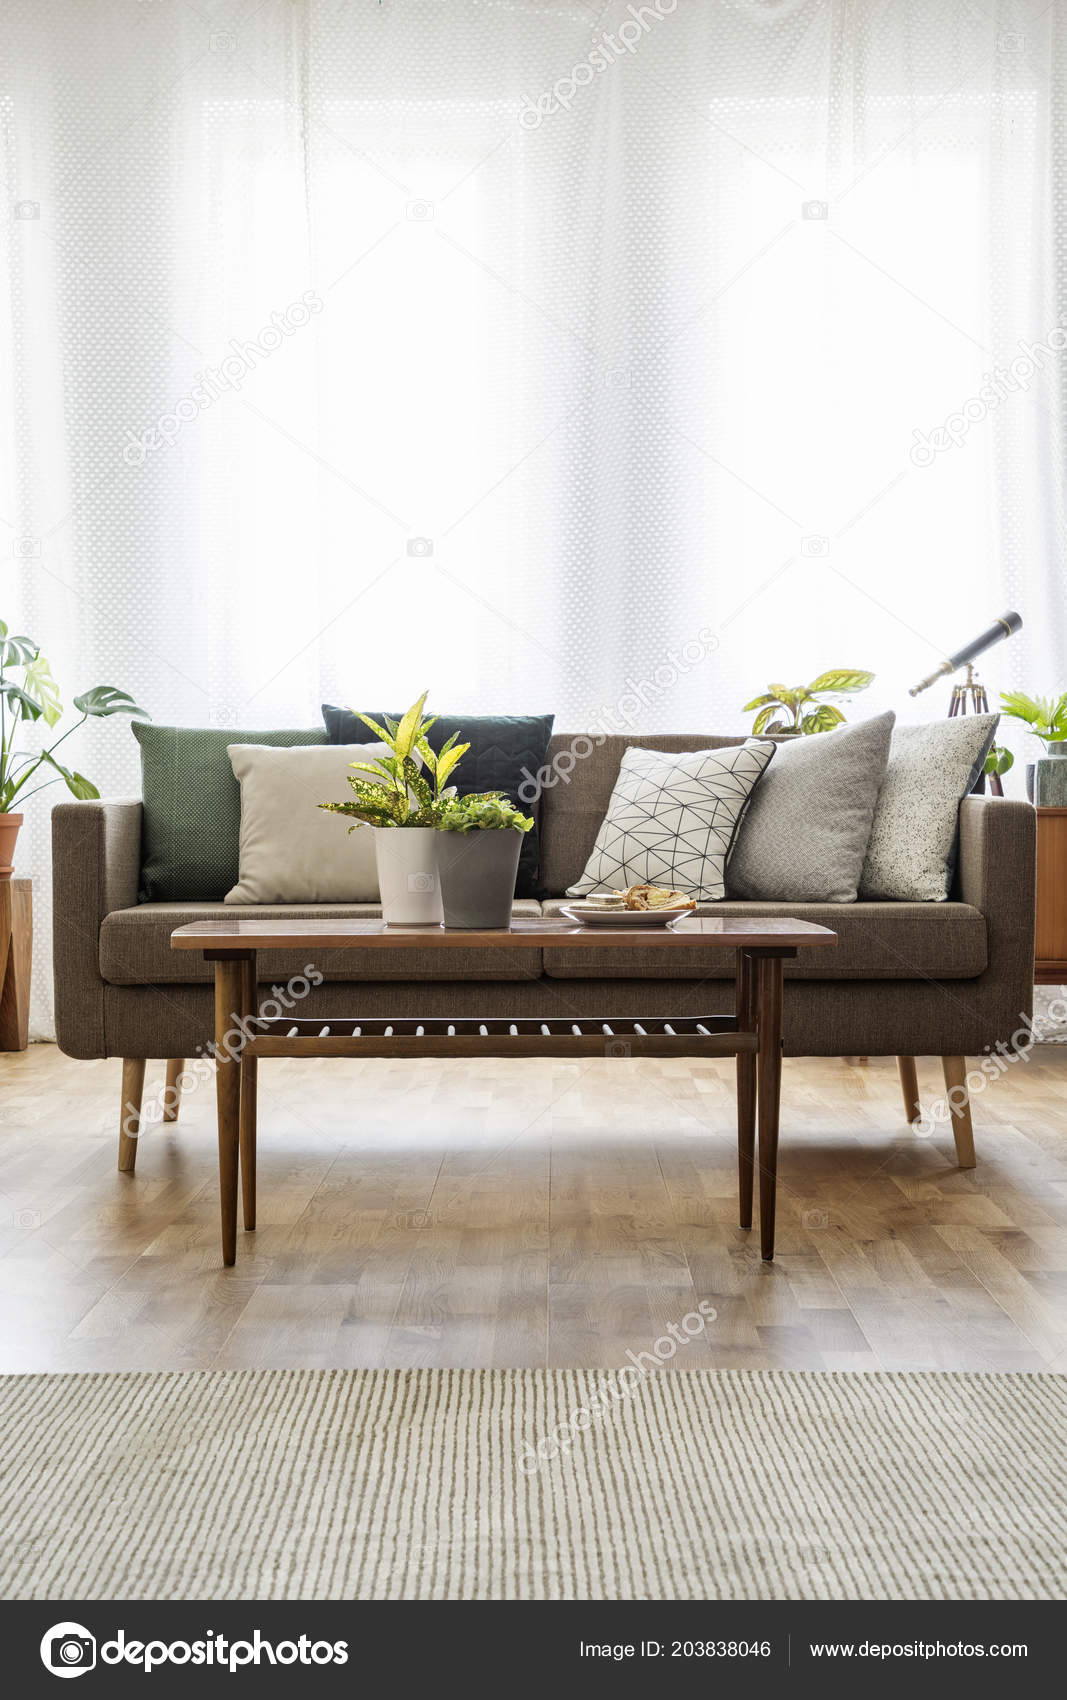 Pleasing Plants Wooden Table Front Couch Pillows Bright Living Room Unemploymentrelief Wooden Chair Designs For Living Room Unemploymentrelieforg